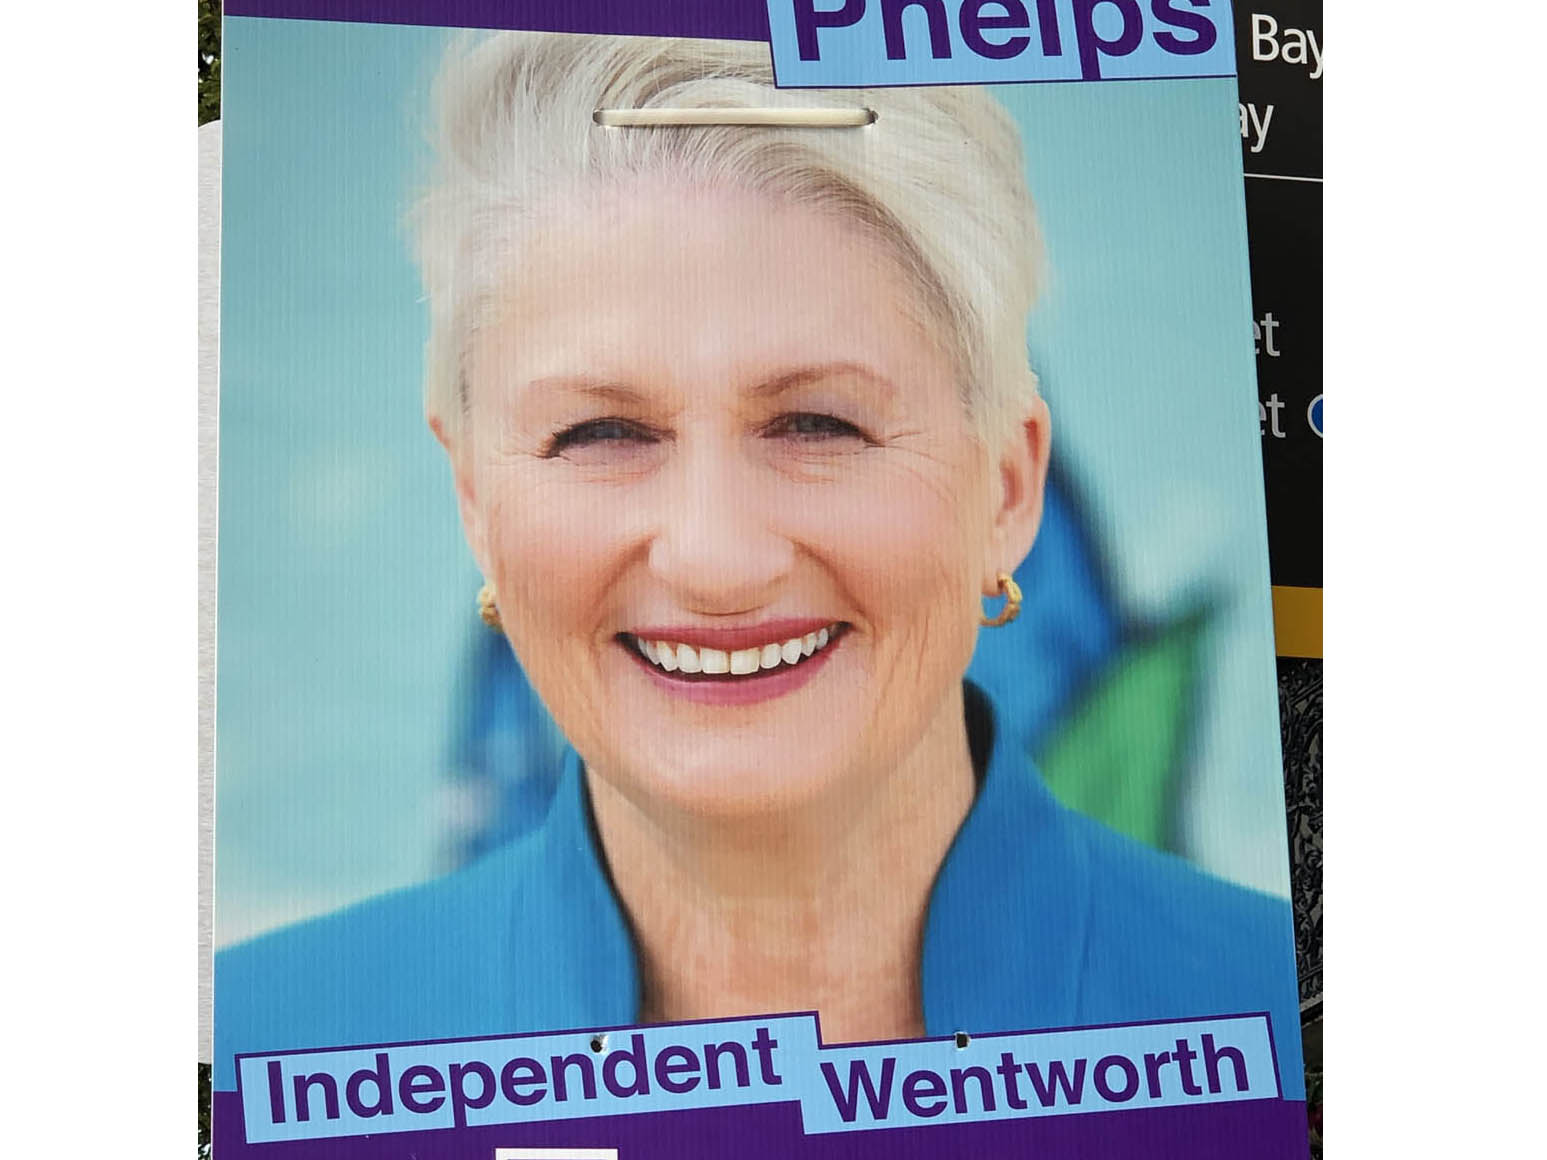 I have photographed Dr Kerryn Phelps before (quite a few years ago) and here I feel that she might have been mesmerised by the outcomes of photoshops smoothing tools. A little more restrain in post production might have improved the integrity of this image.